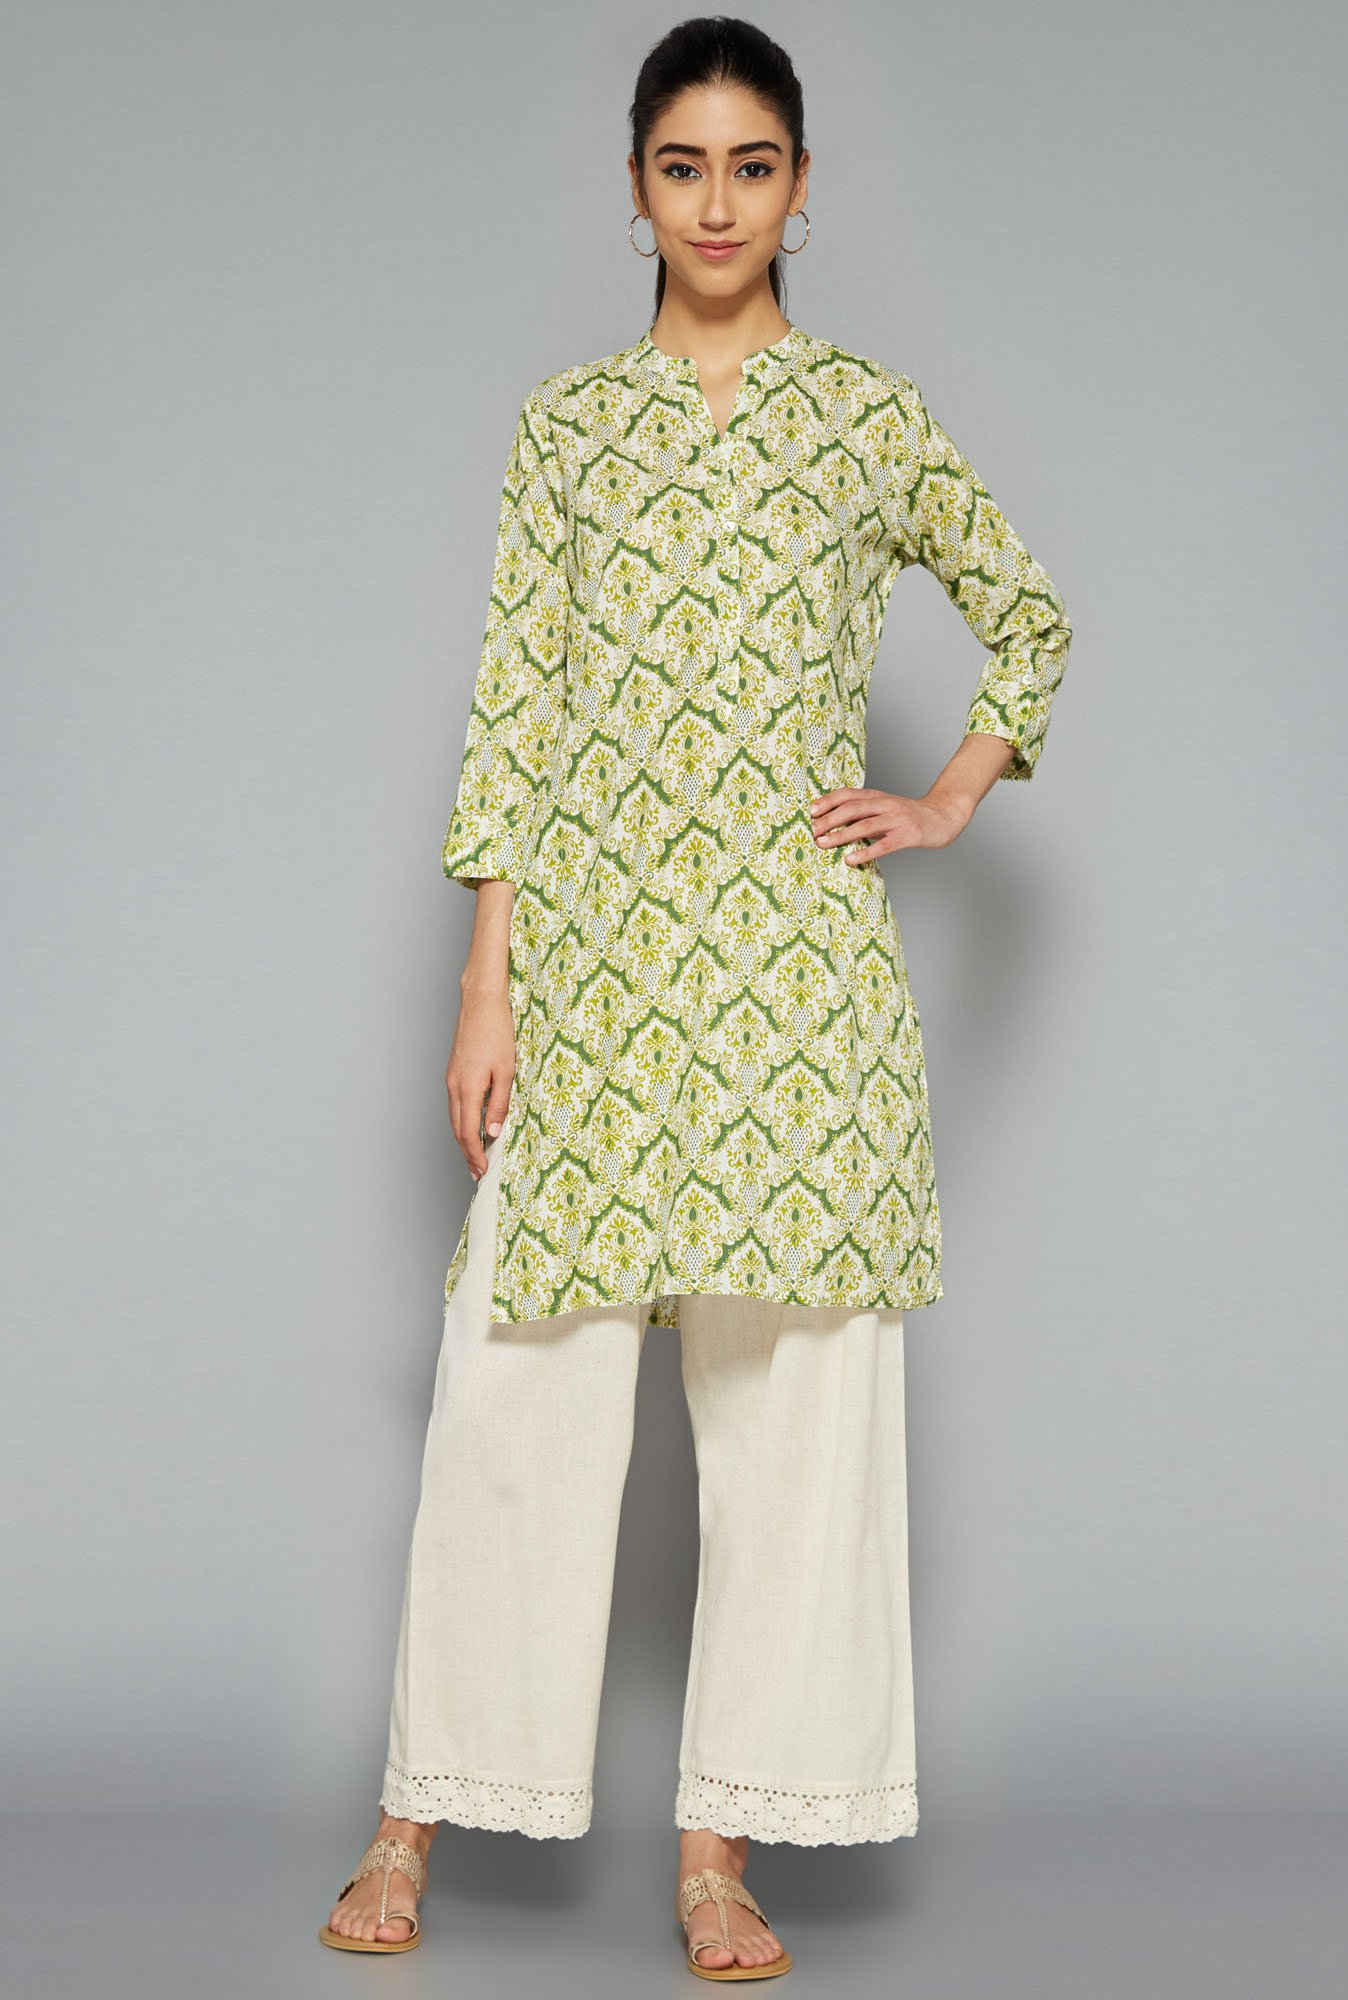 Utsa by Westside Lime Printed Kurti